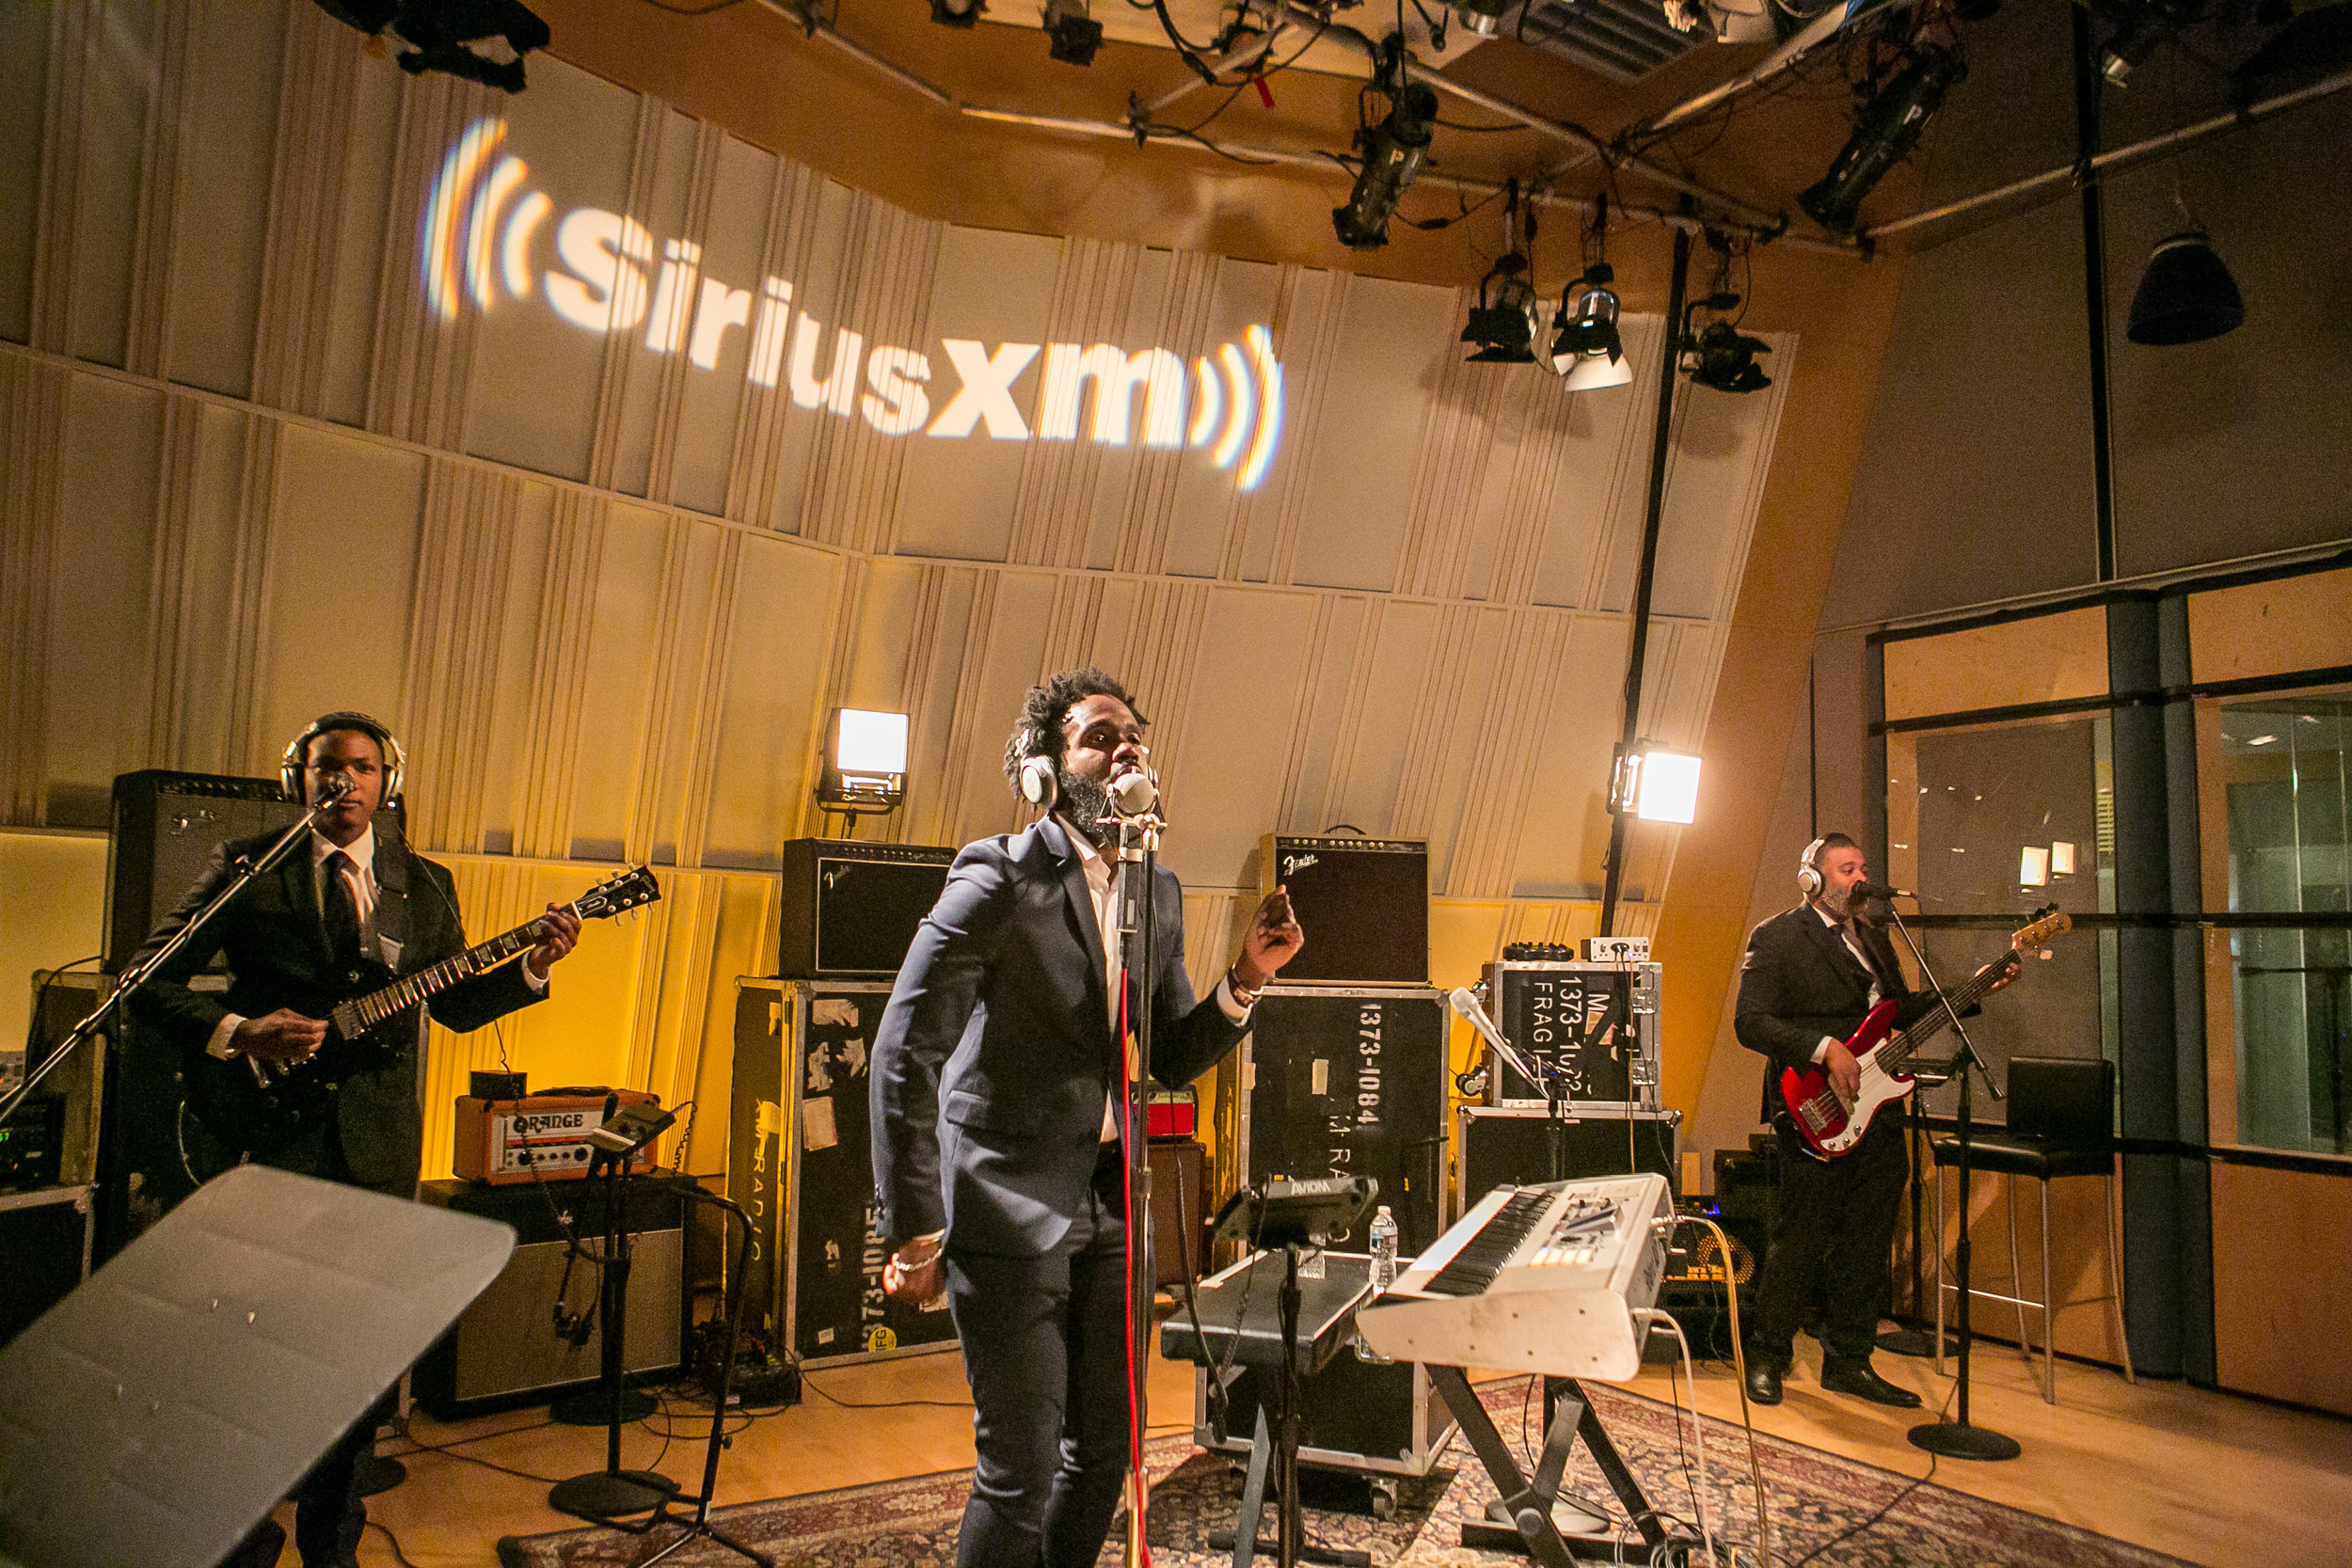 Washington DC | Sirius Satellite Radio studio recording | Nov. 2017